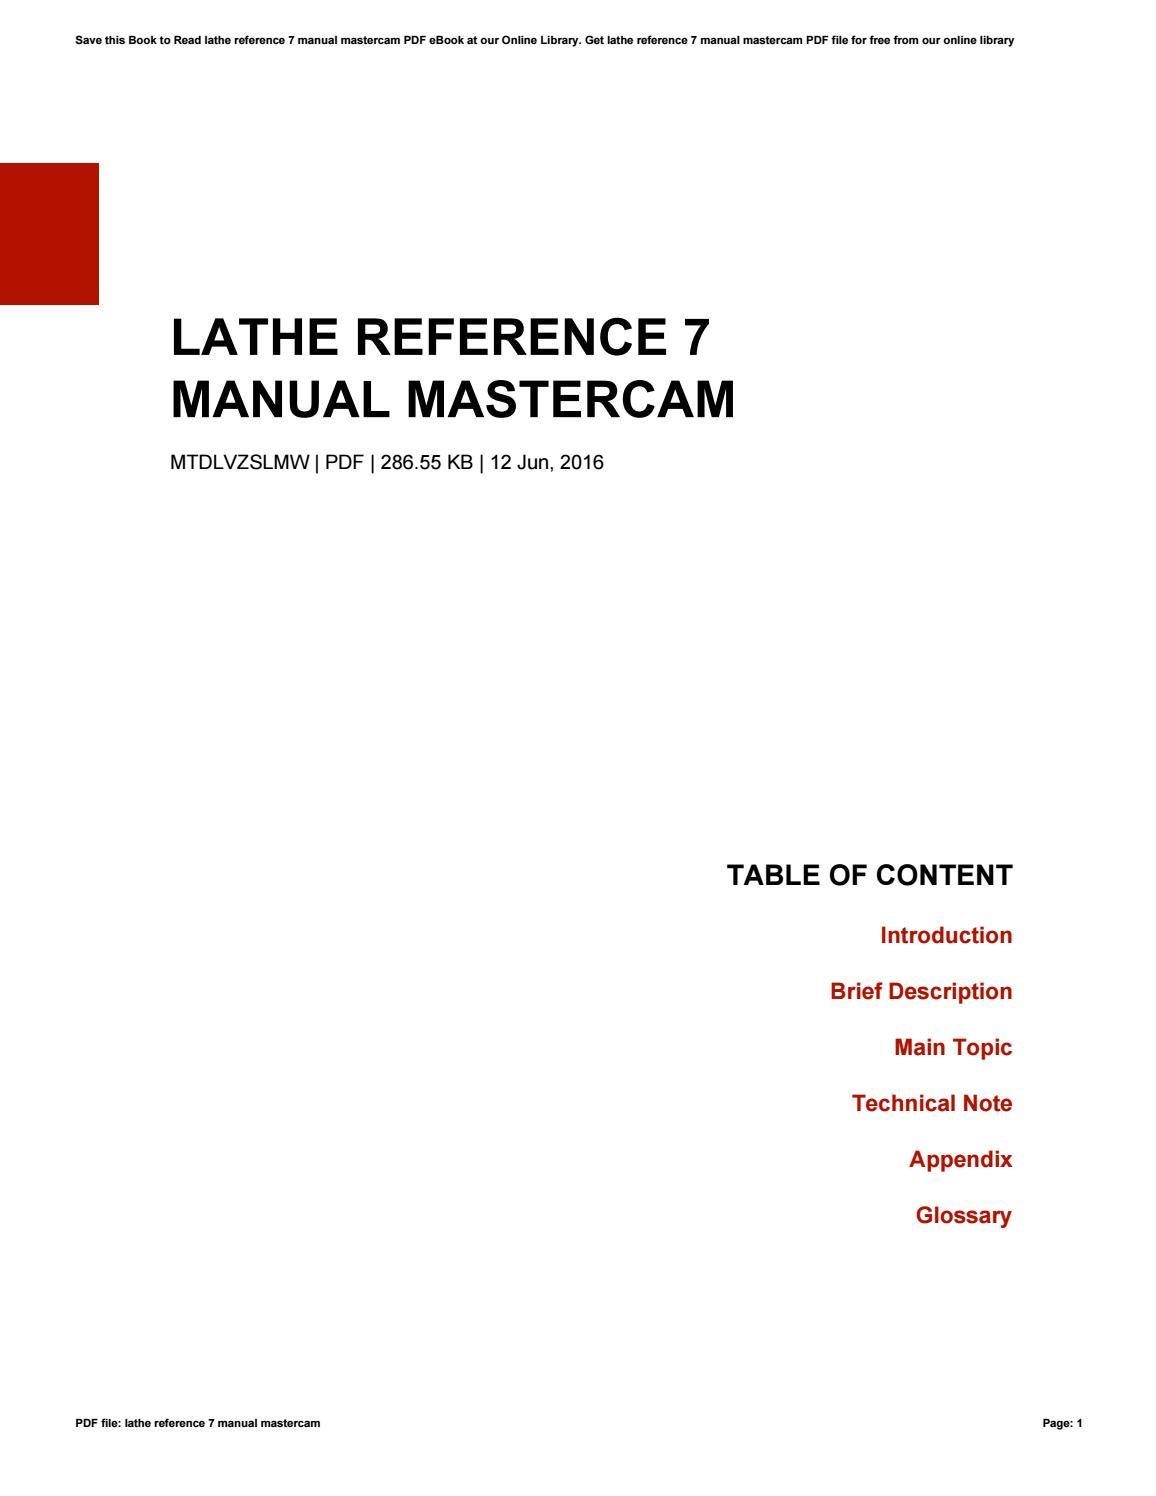 Lathe reference 7 manual mastercam by AaronJohnson2554 - issuu